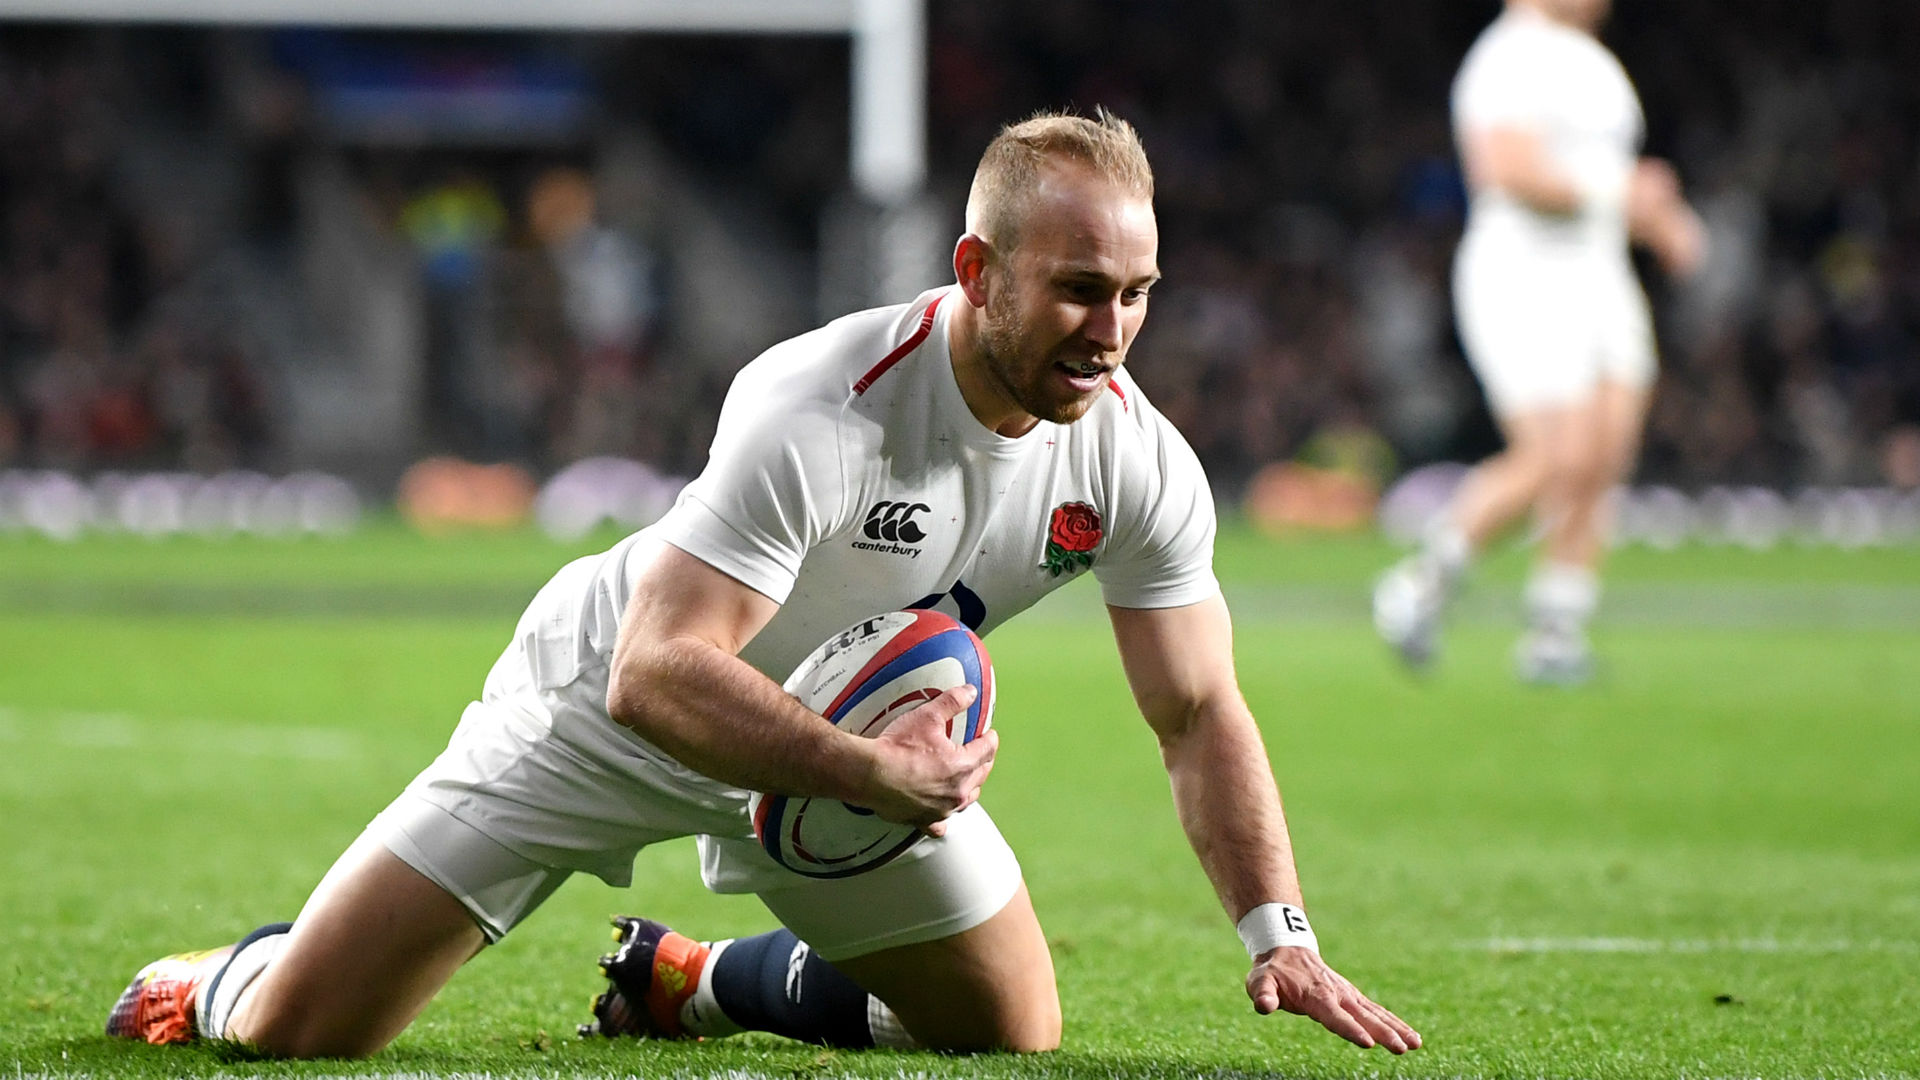 Wasps and England scrum-half Robson sidelined by blood clots